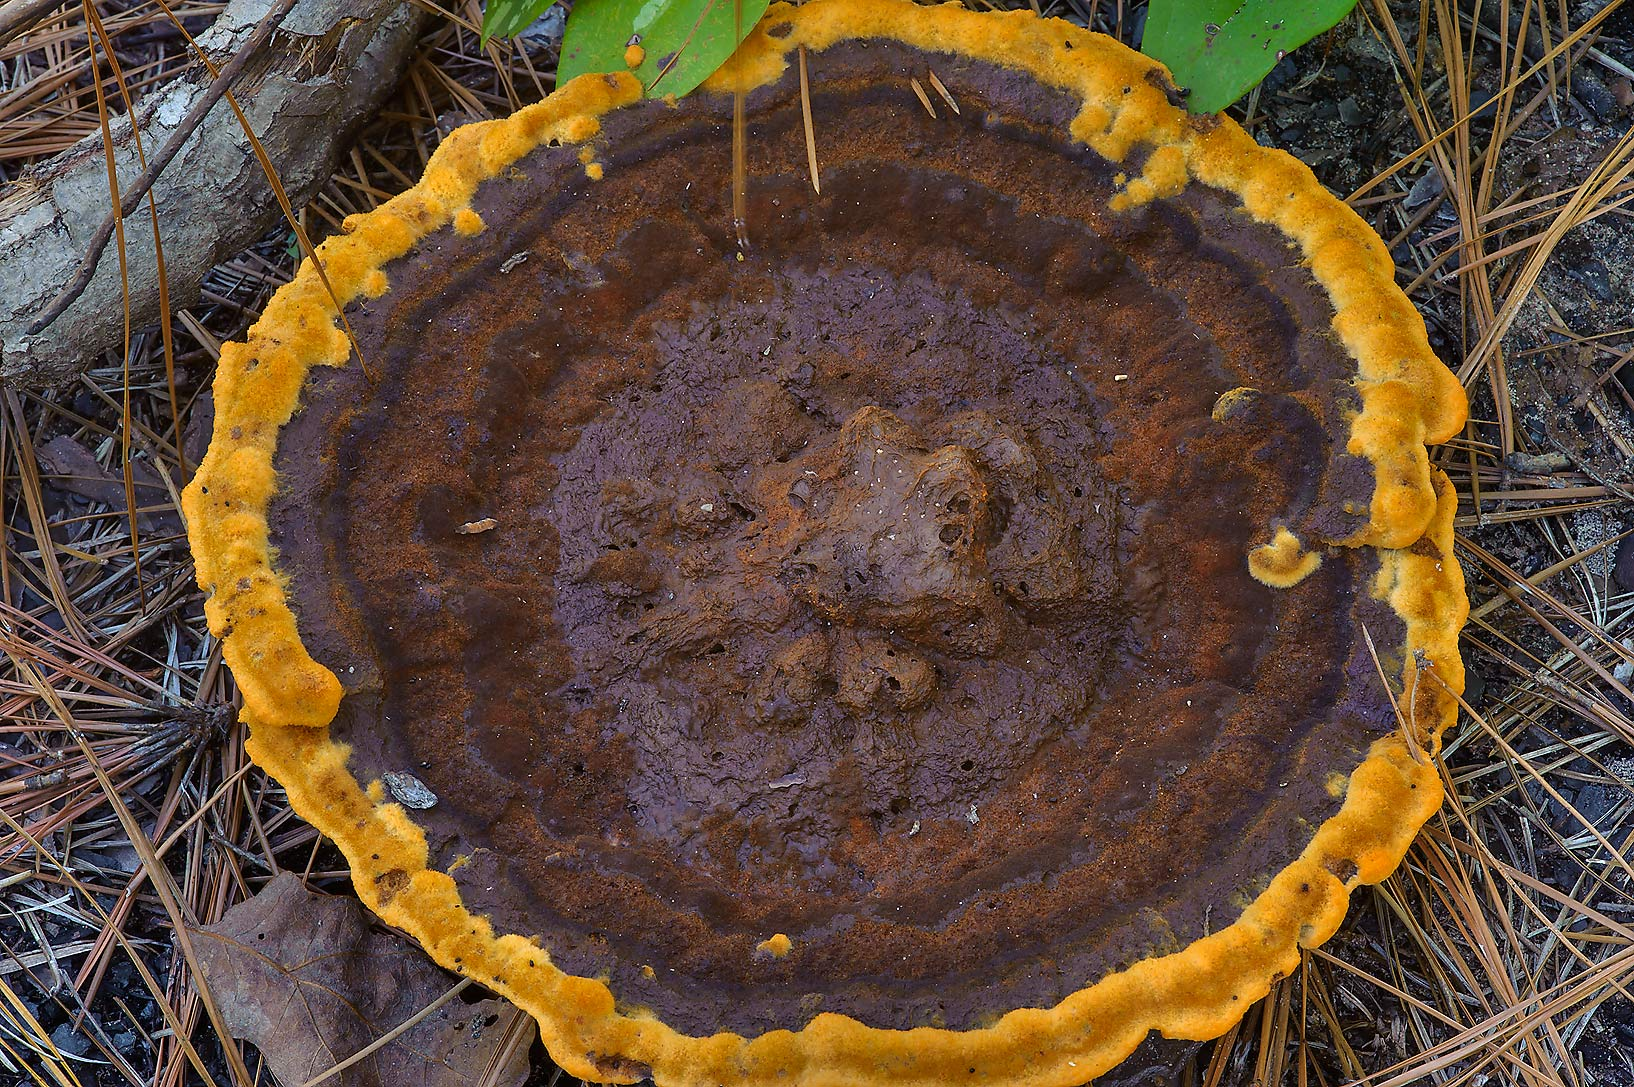 Mature velvet-top fungus (Phaeolus schweinitzii...National Forest. Richards, Texas